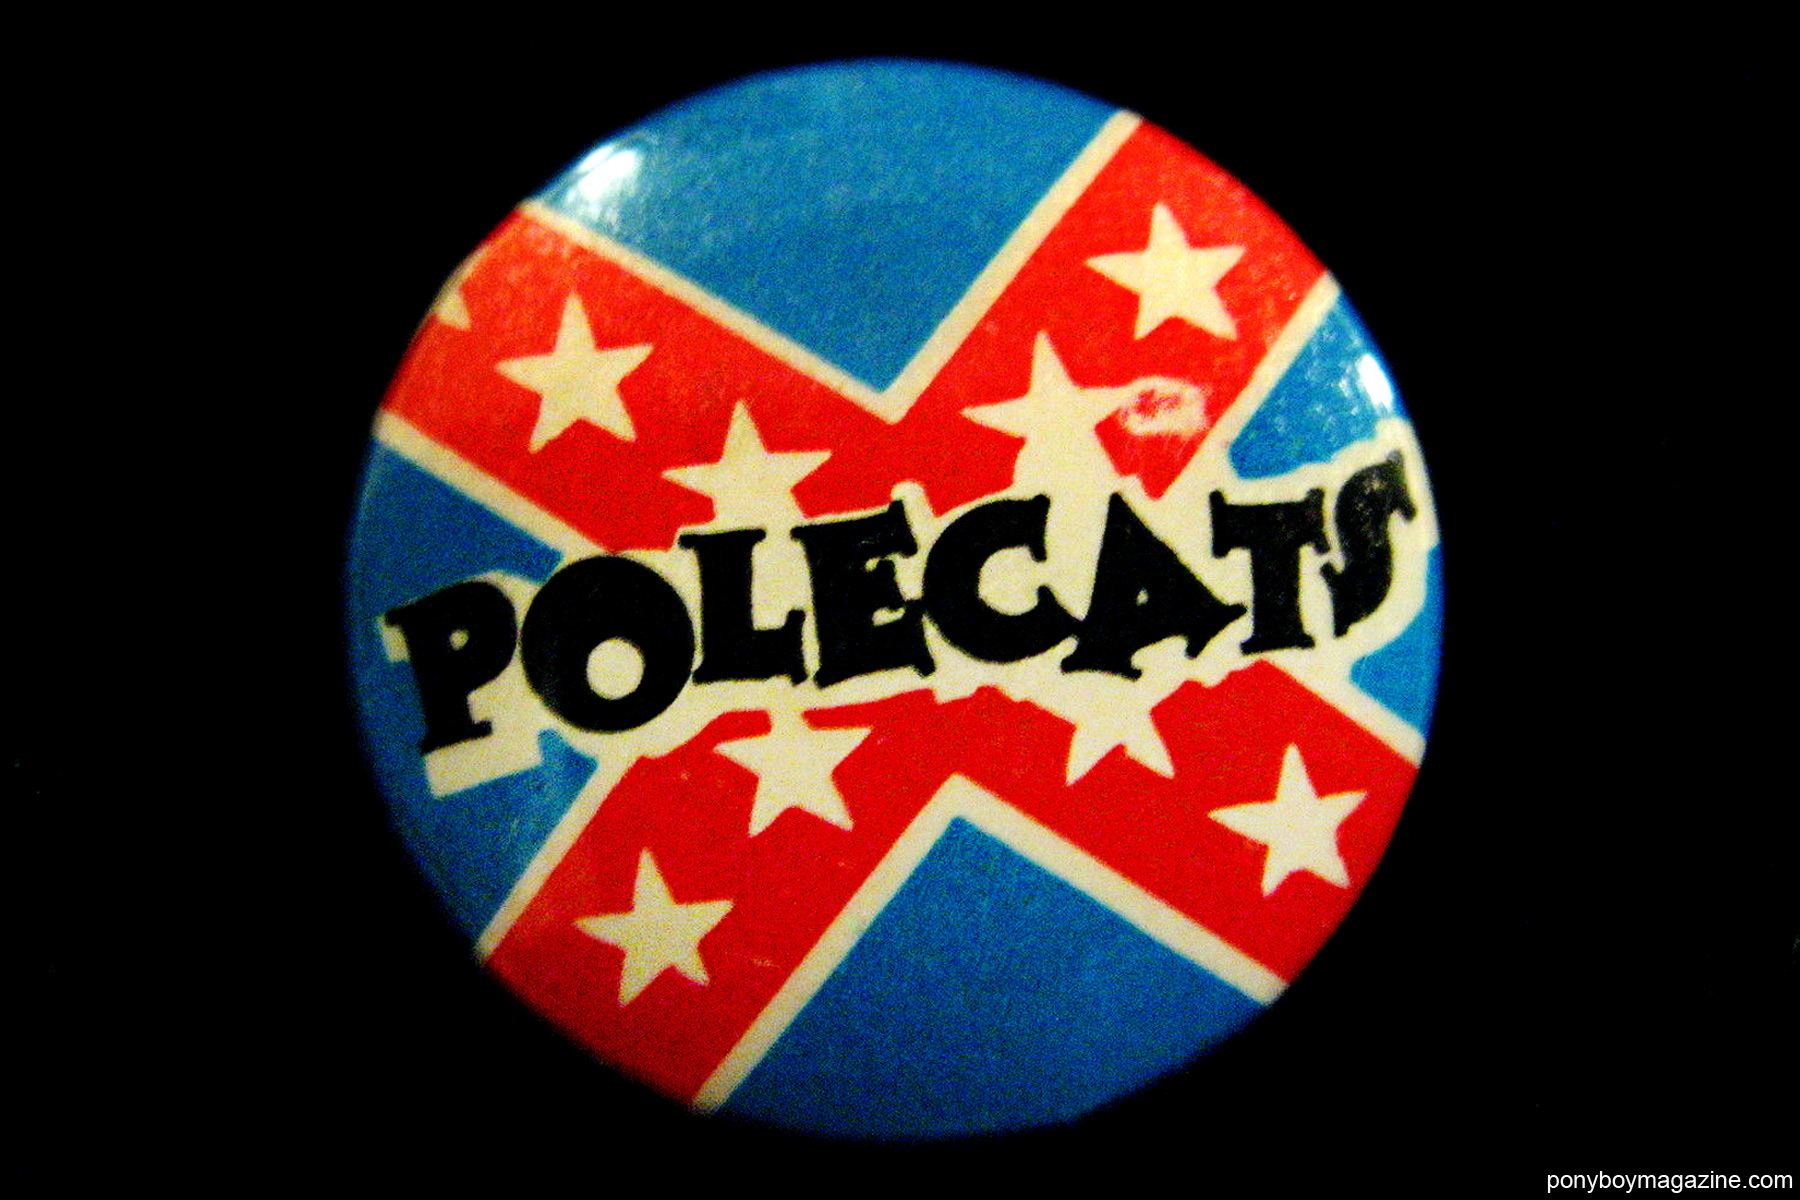 An old band button for the Polecats. Ponyboy Magazine.